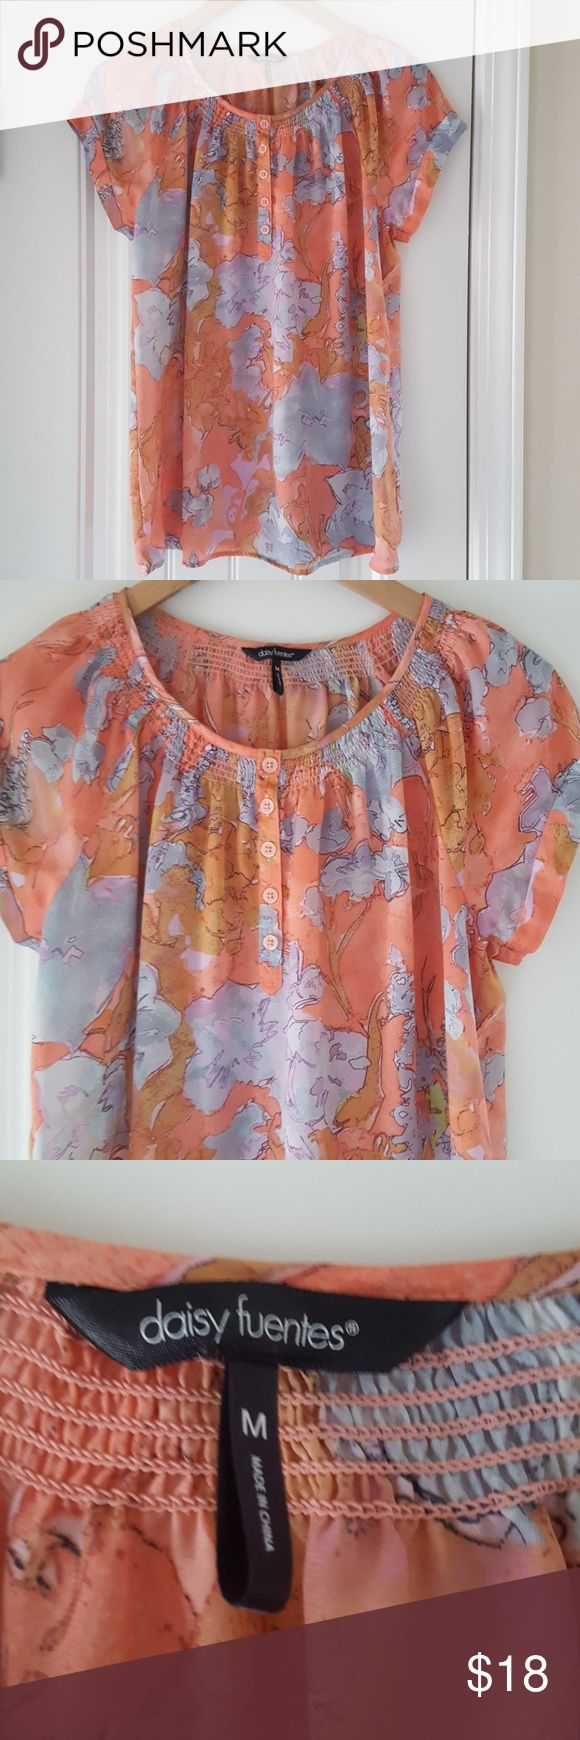 Daisy Fuentes Medium Sheer Floral Top Sheer and light! Daisy Fuentes from Kohl's Bundle suggestion Ann Taylor earrings!!! 30 percent off bundles!!!! Daisy Fuentes Tops Blouses